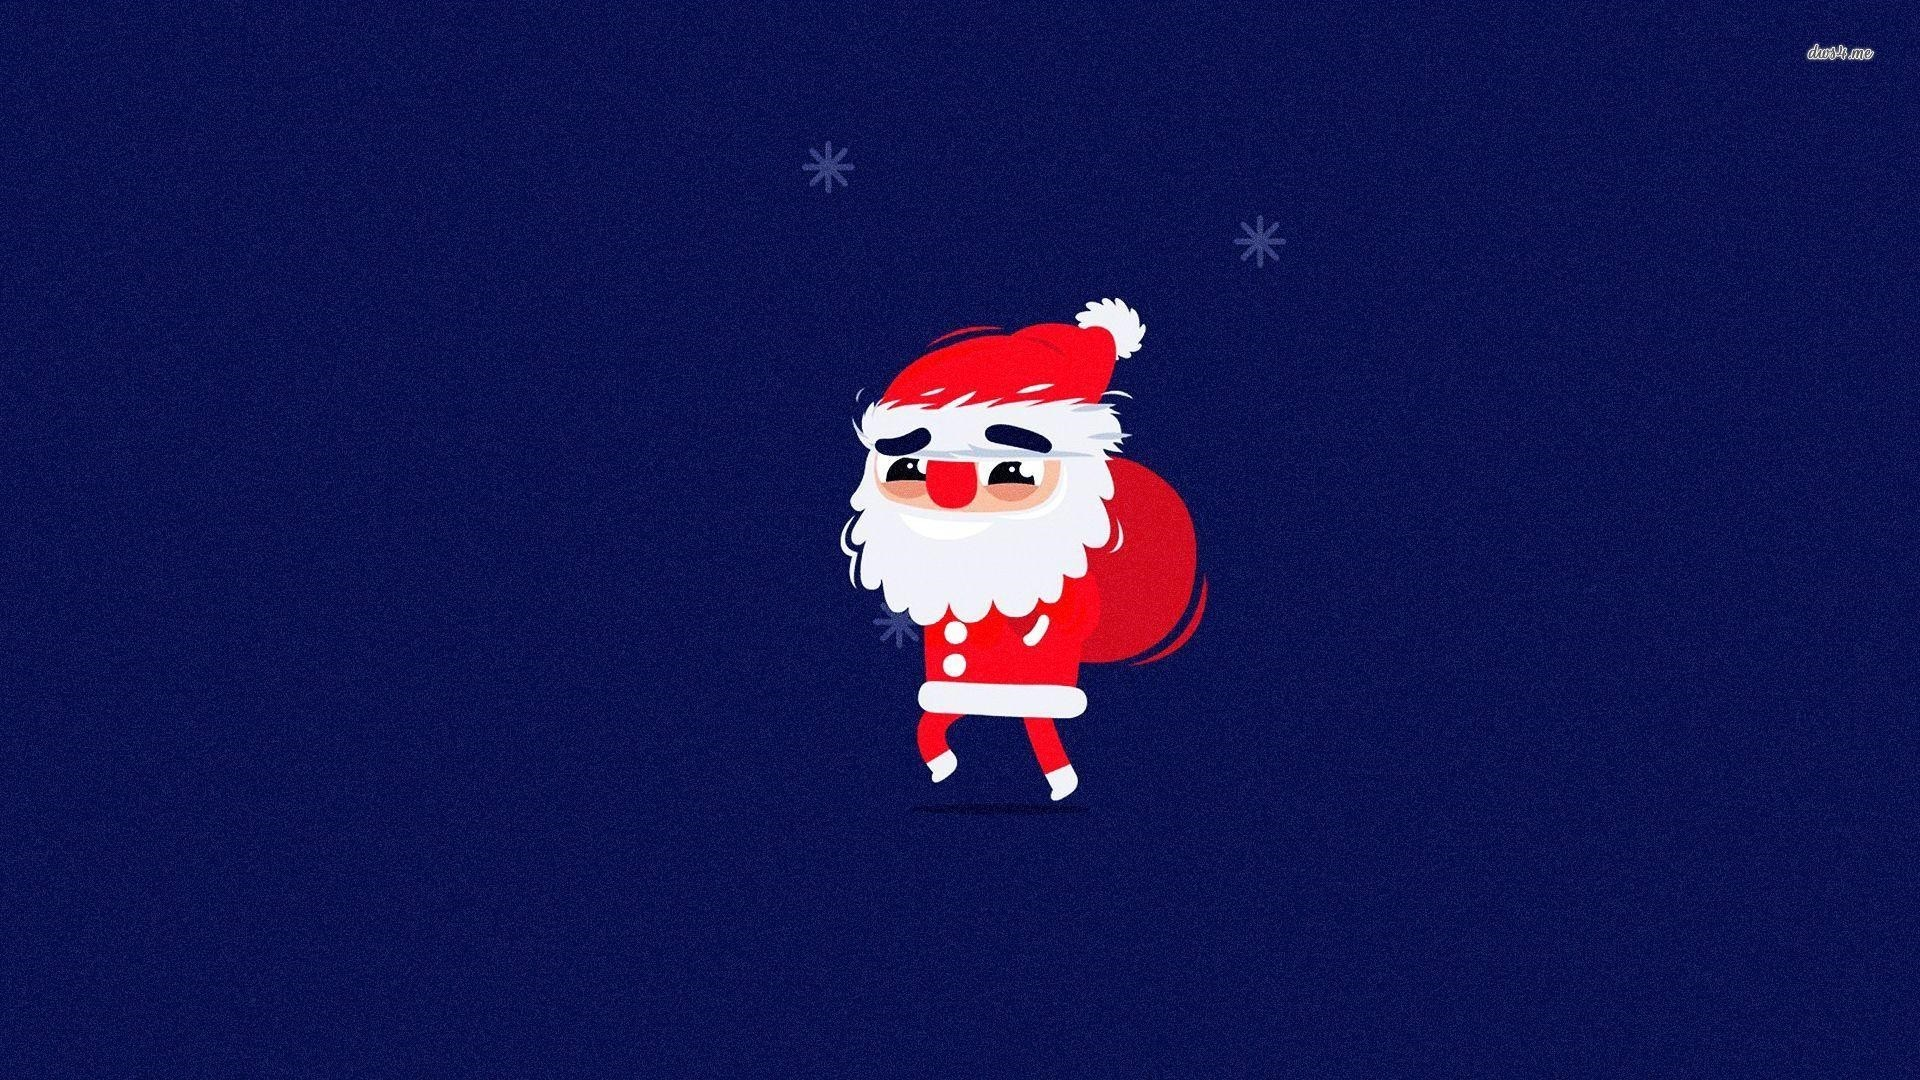 Minimalist Christmas Wallpaper Full HD